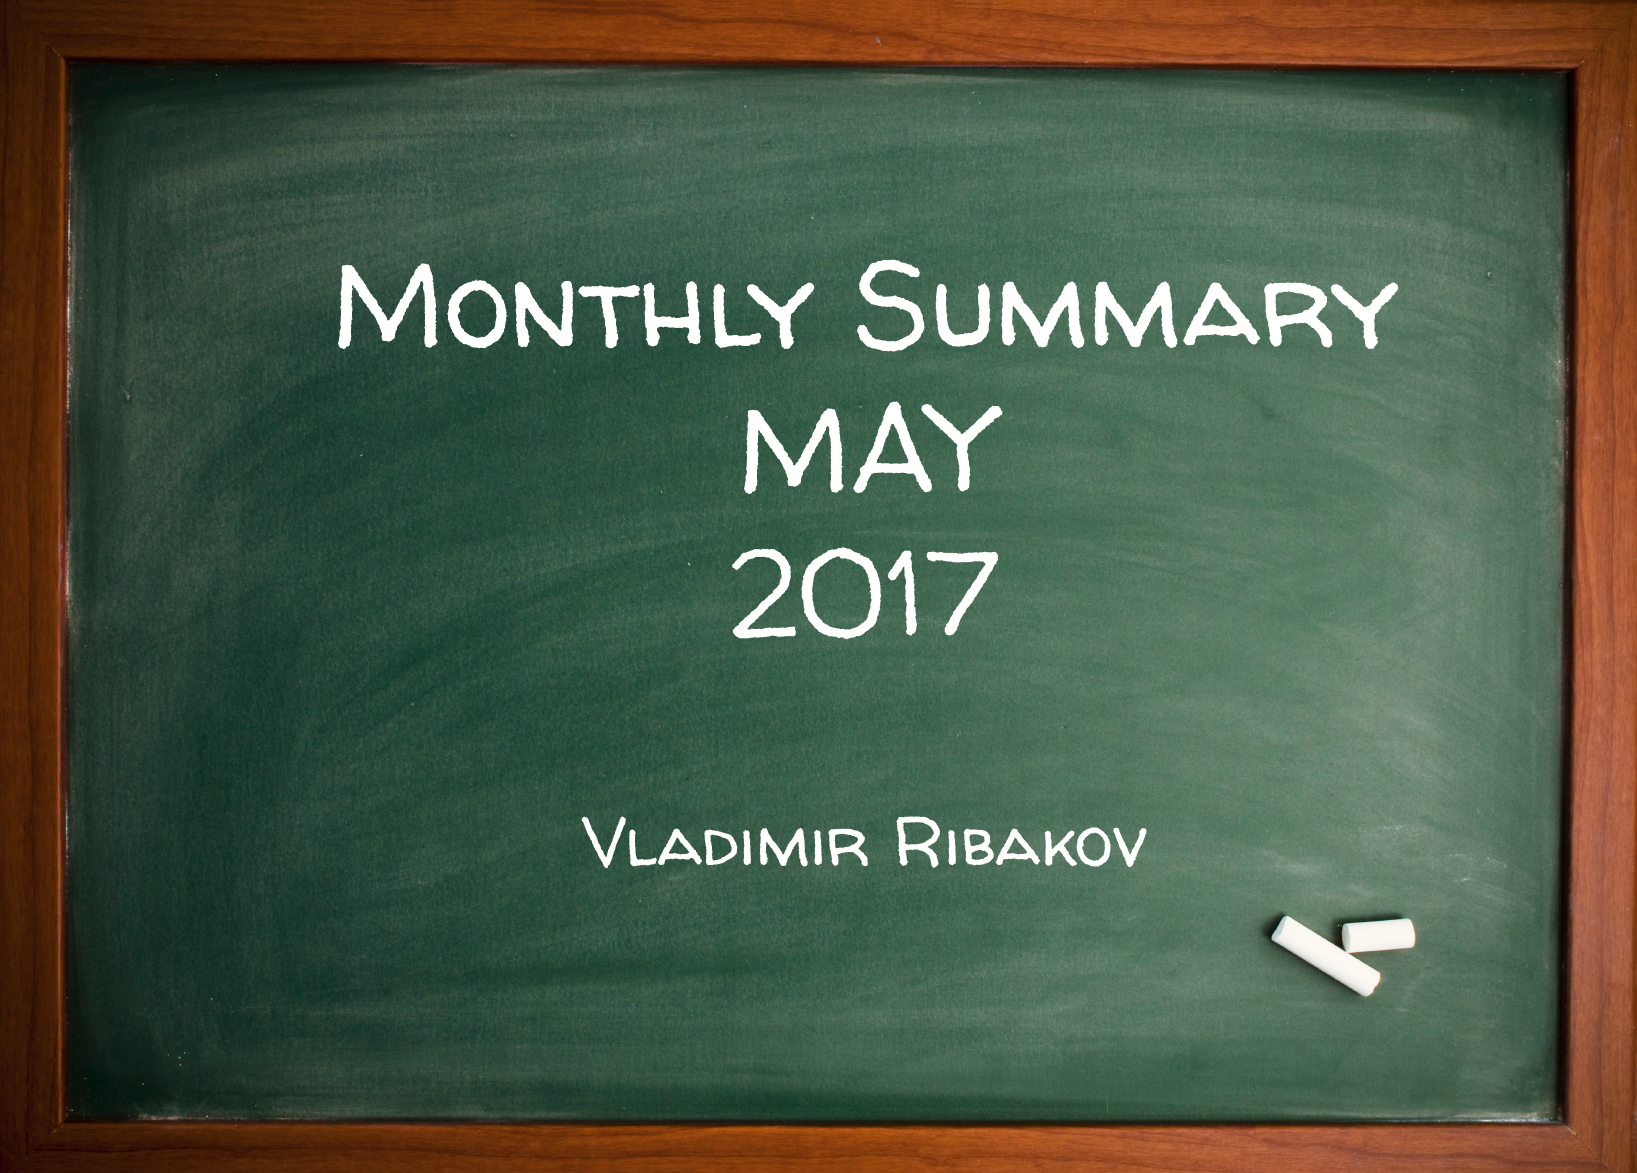 Monthly Summary May 2017